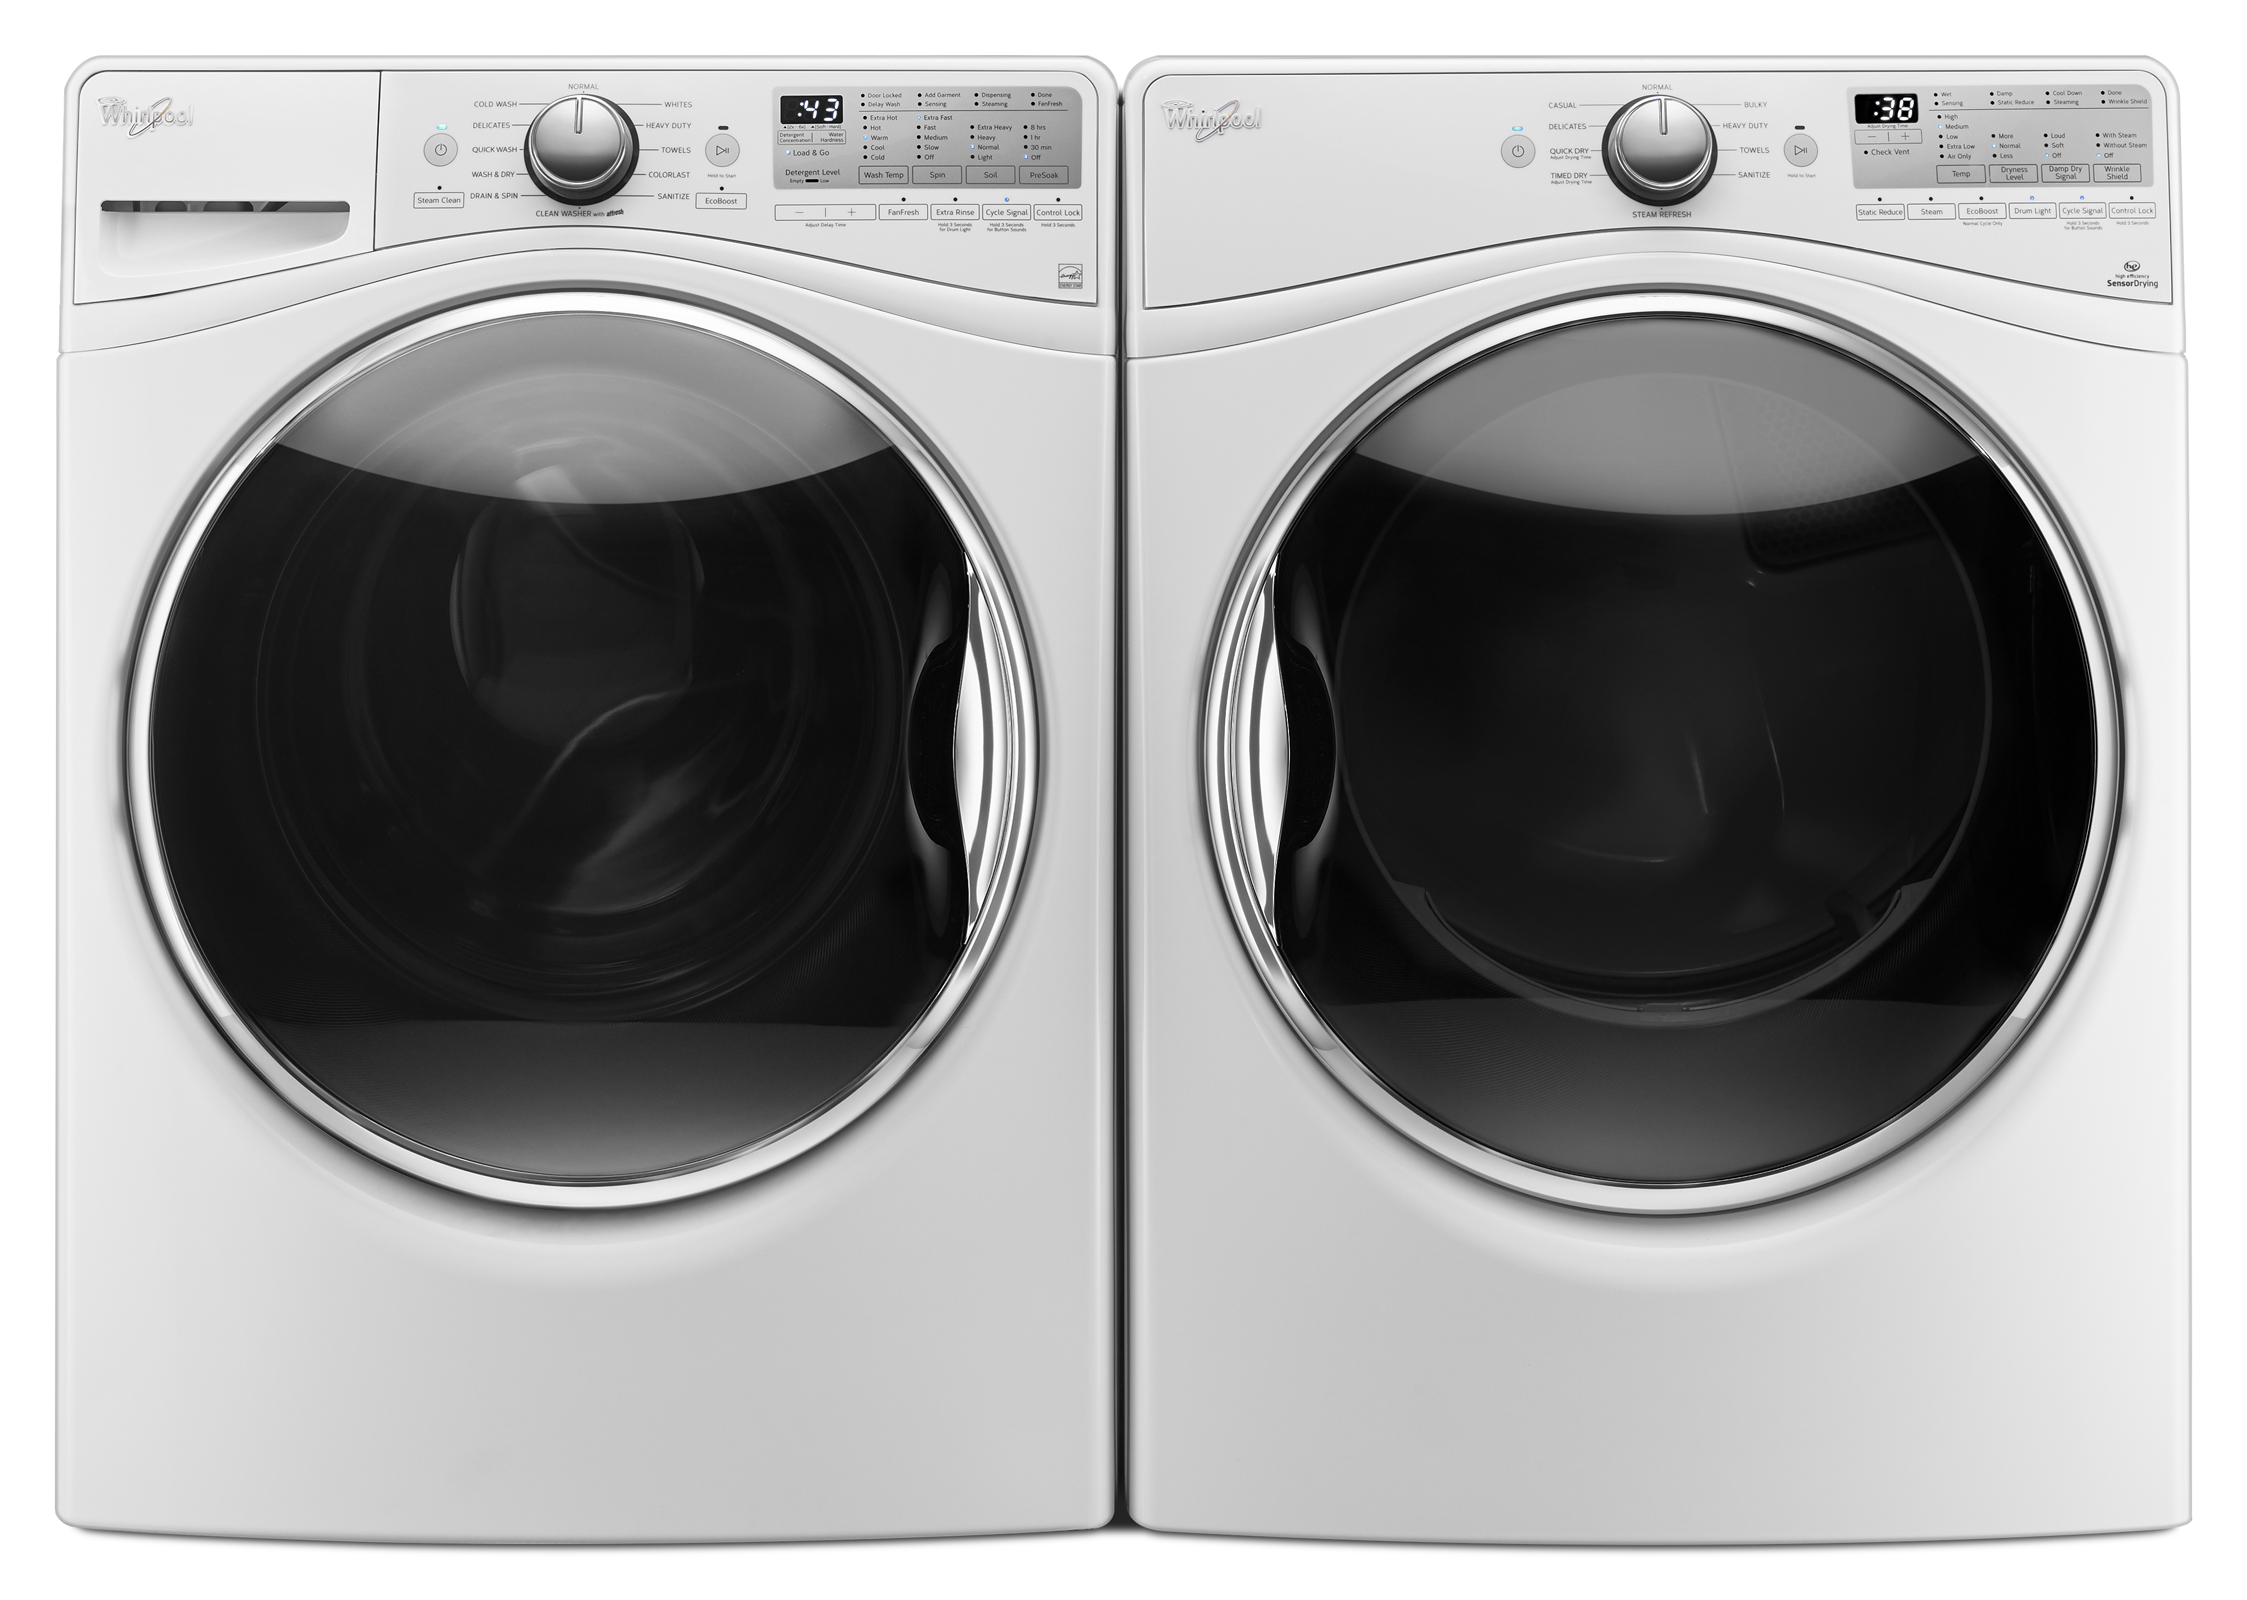 Whirlpool WED90HEFW 7.4 cu. ft. Electric Dryer - White